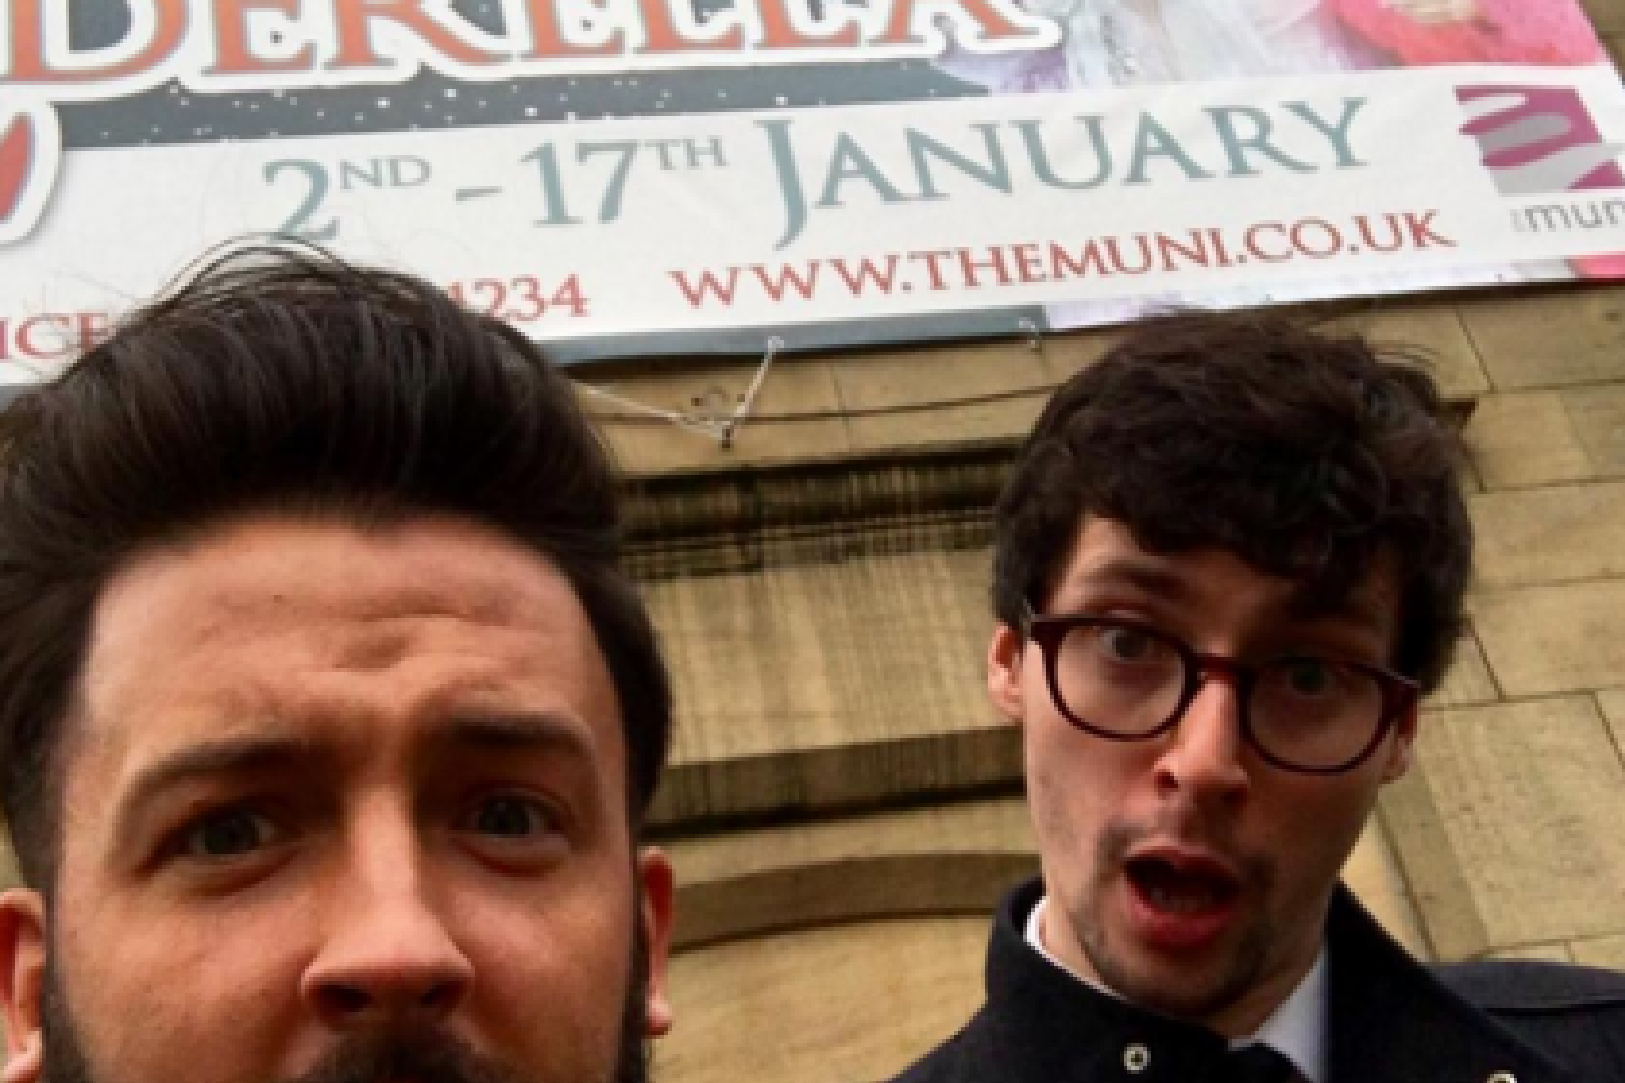 Competition - Send us your #MuniPanto selfie